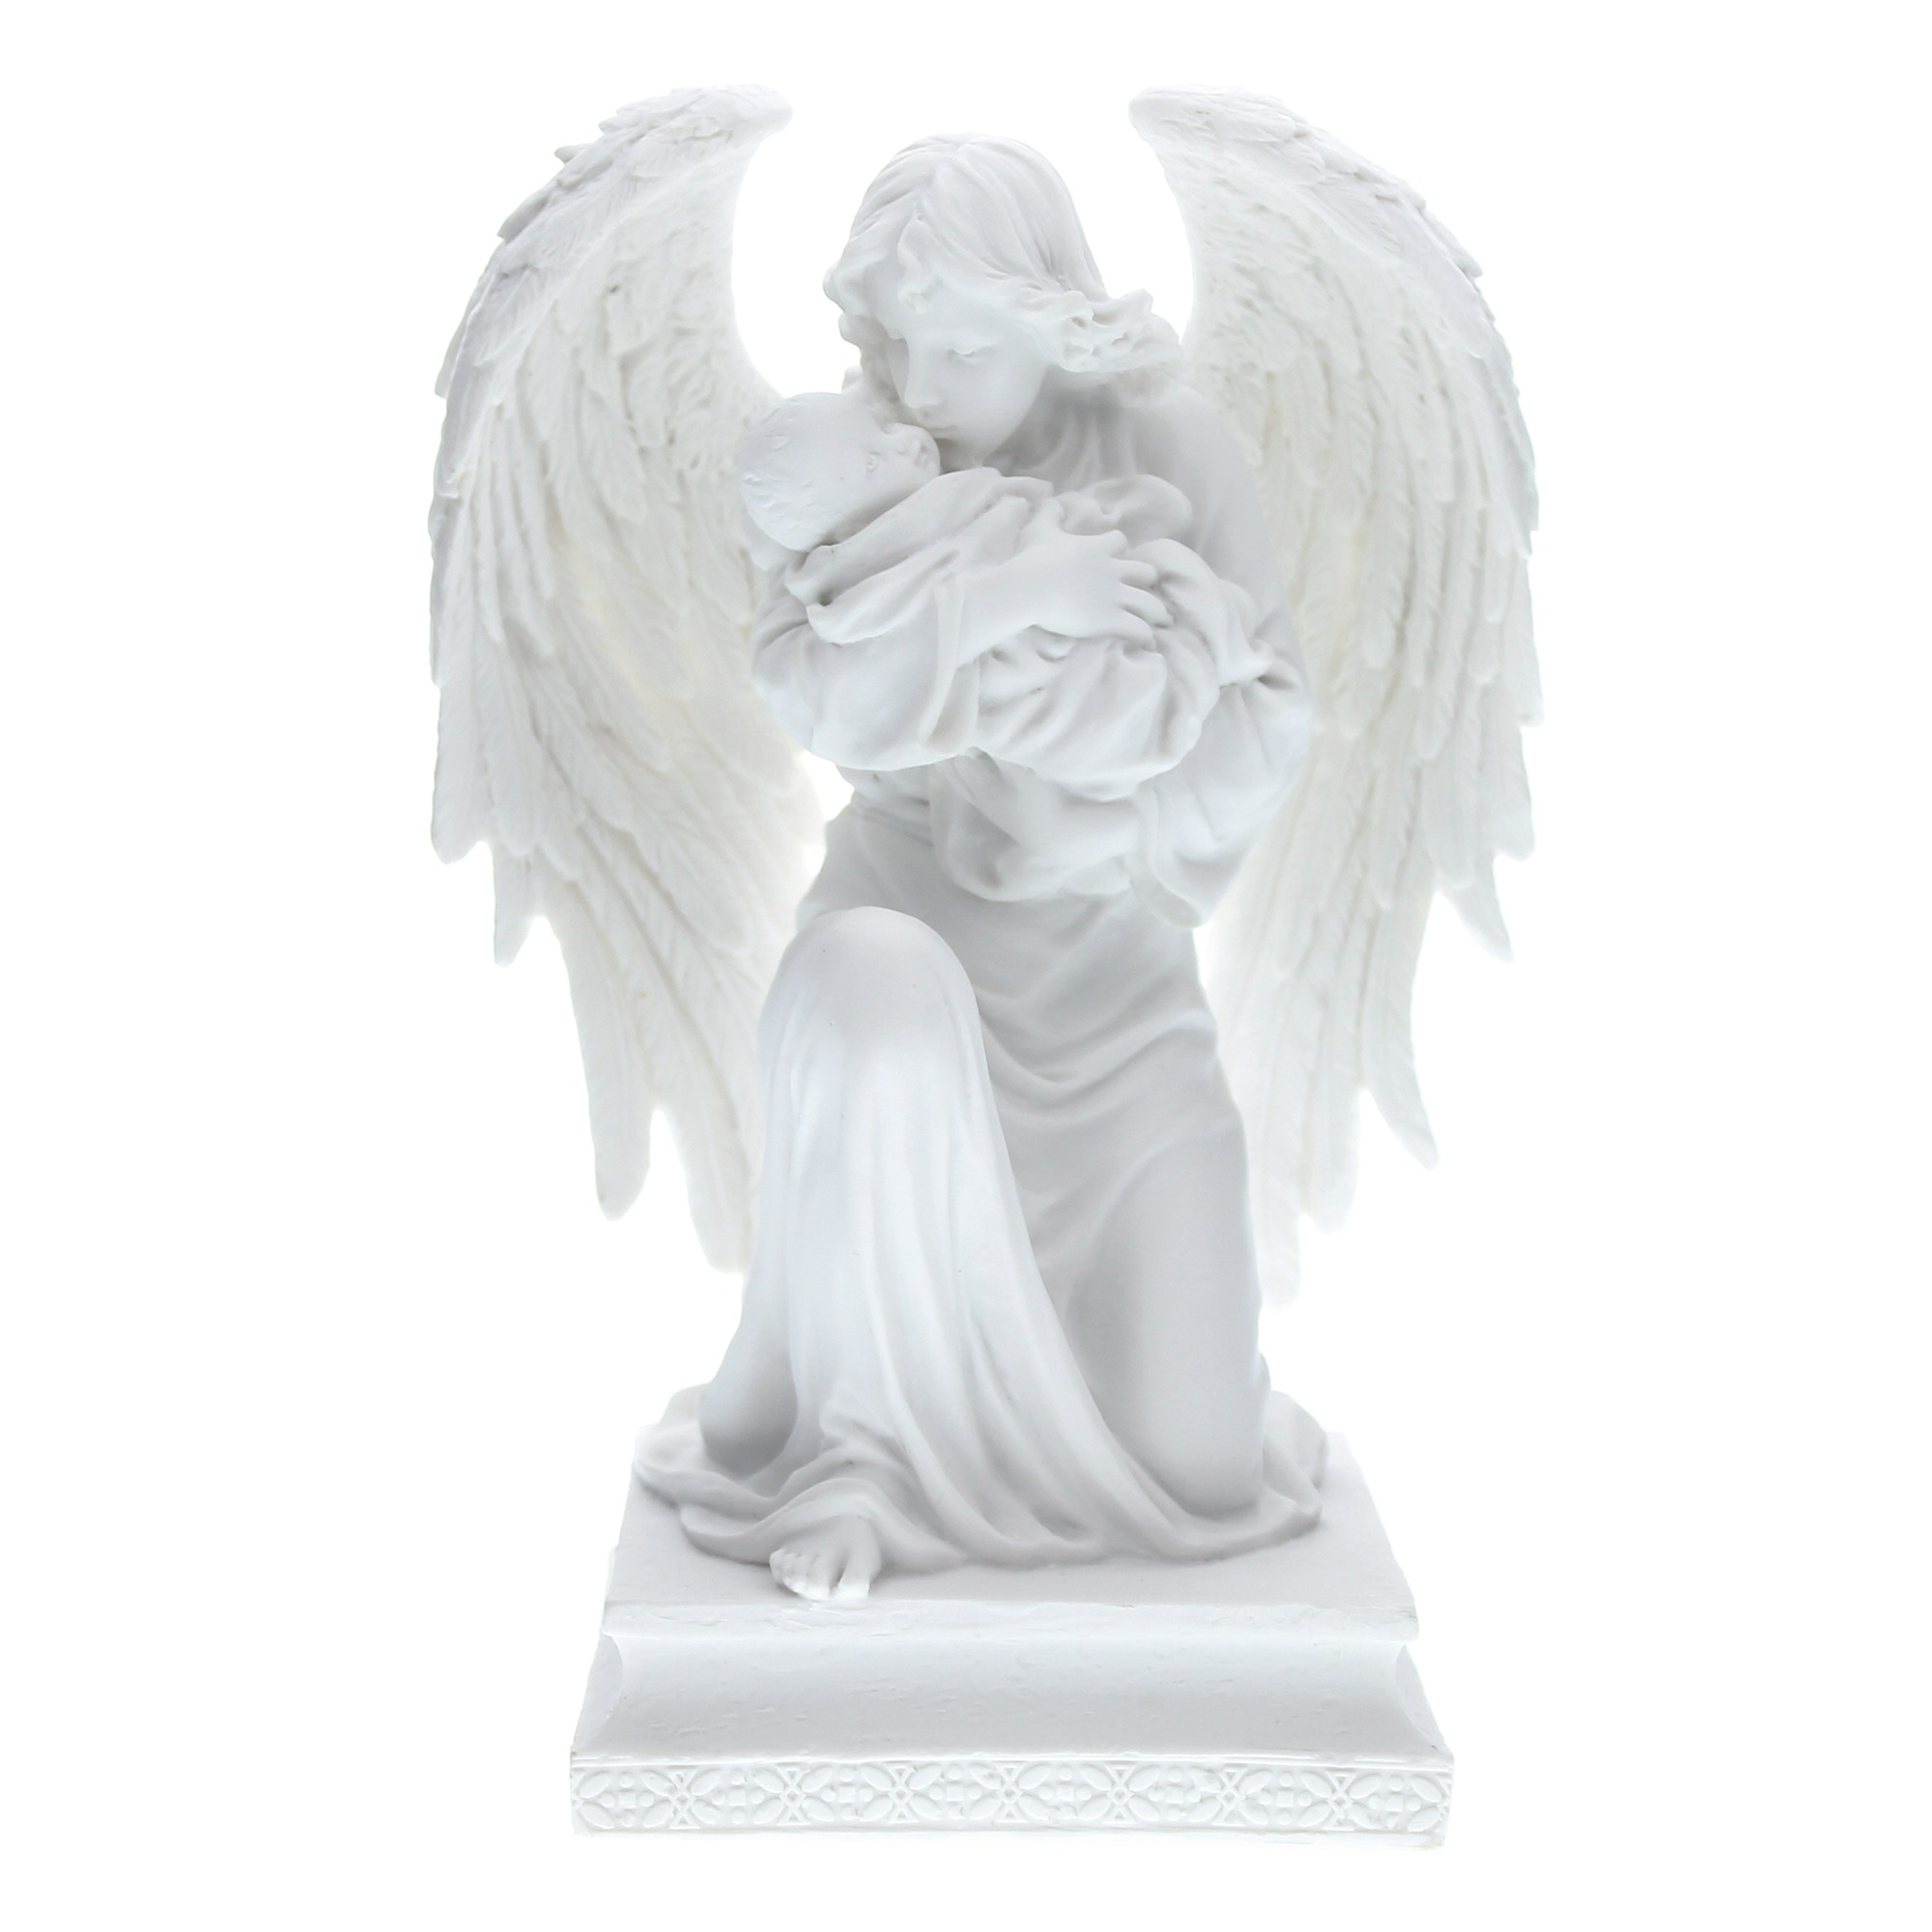 Guardian Angel With Child Veronese Statue 7 Inch The Catholic Company